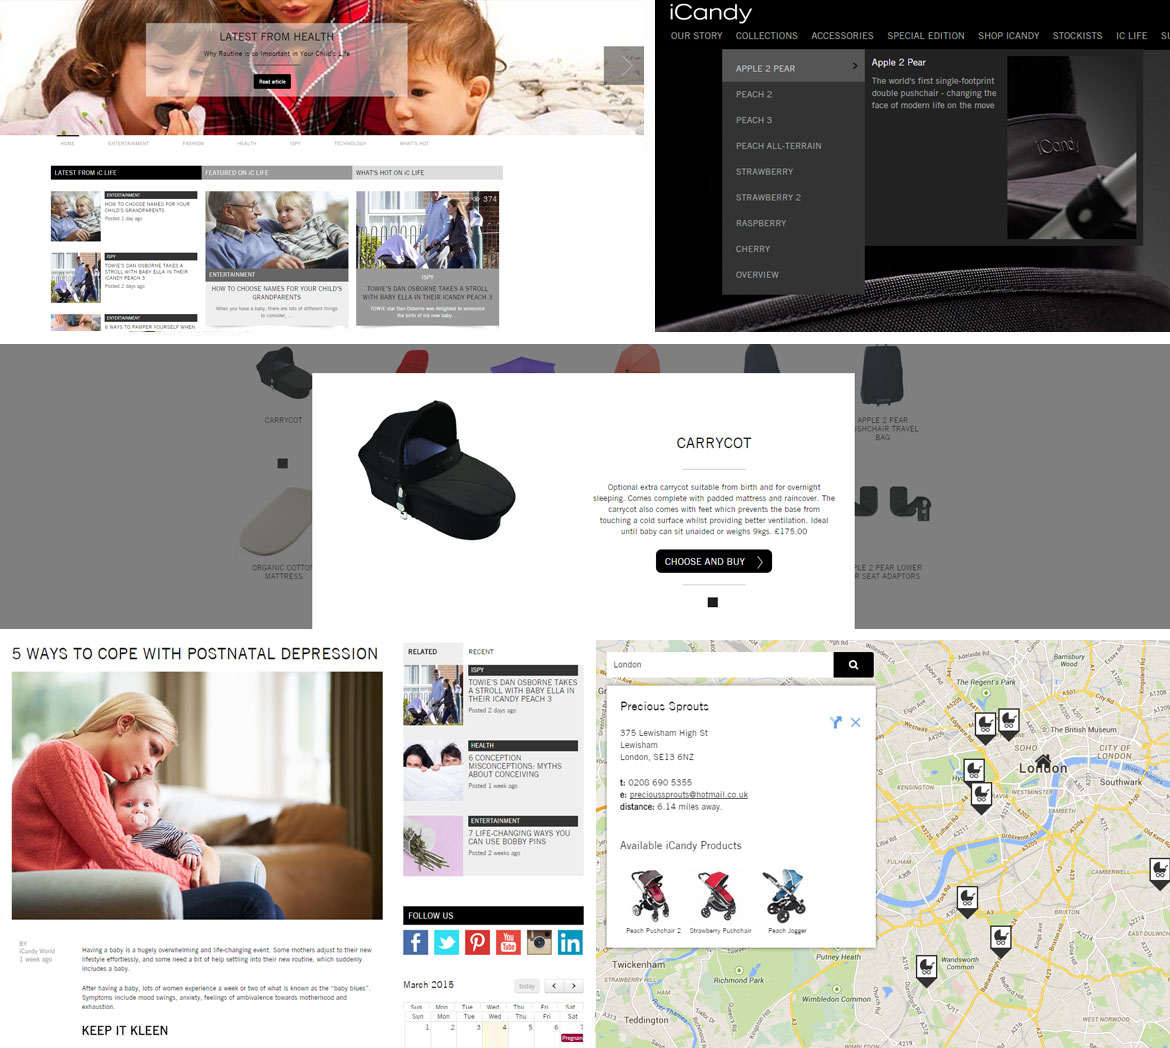 iCandy: Optimising eCommerce - Example Work